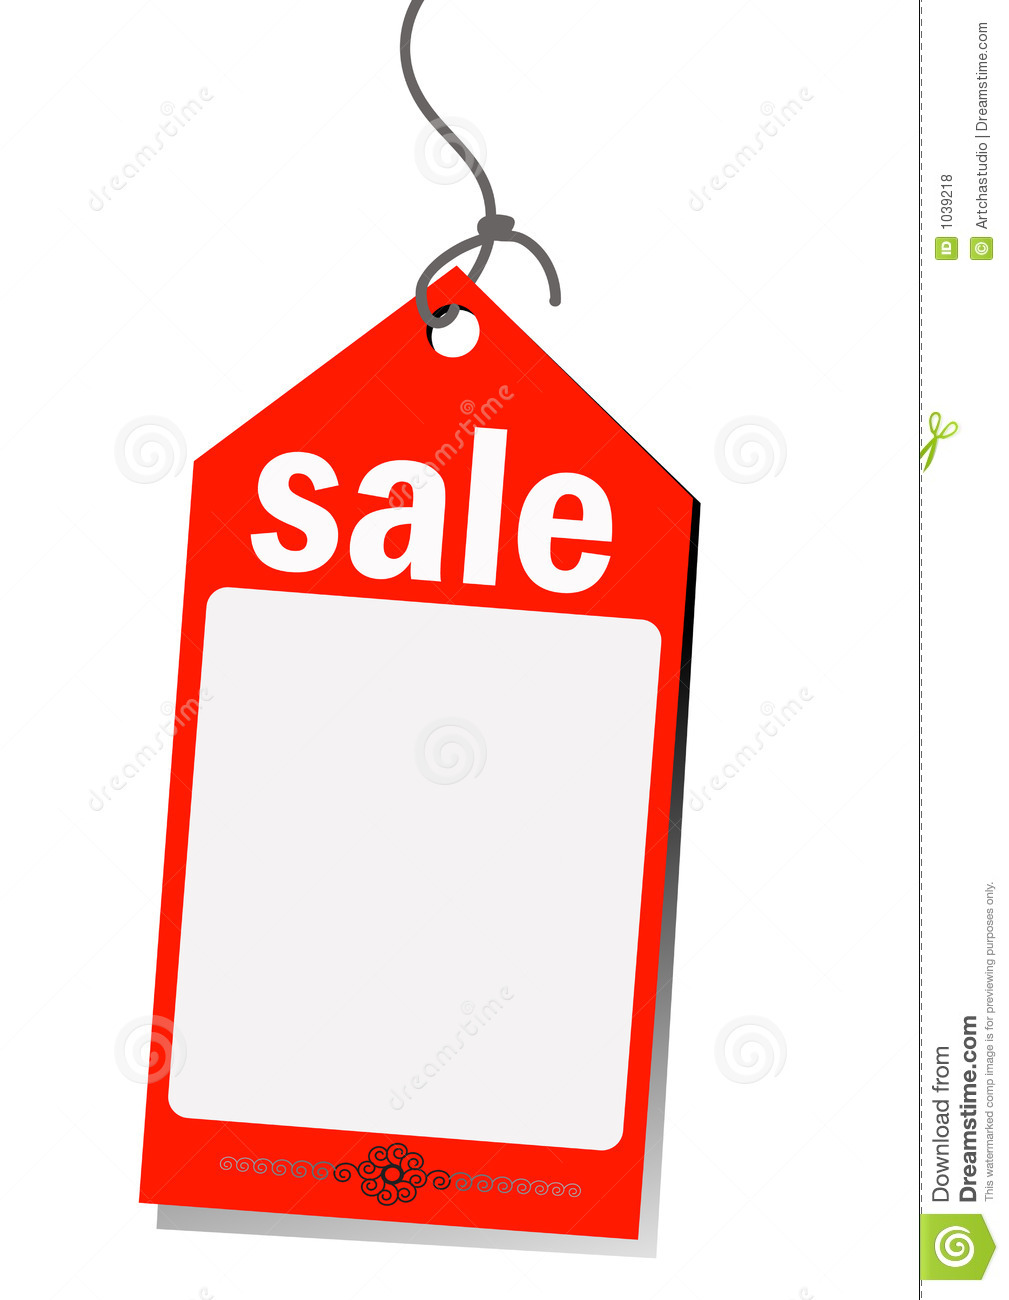 Red sale tag with copy space isolated on white background.